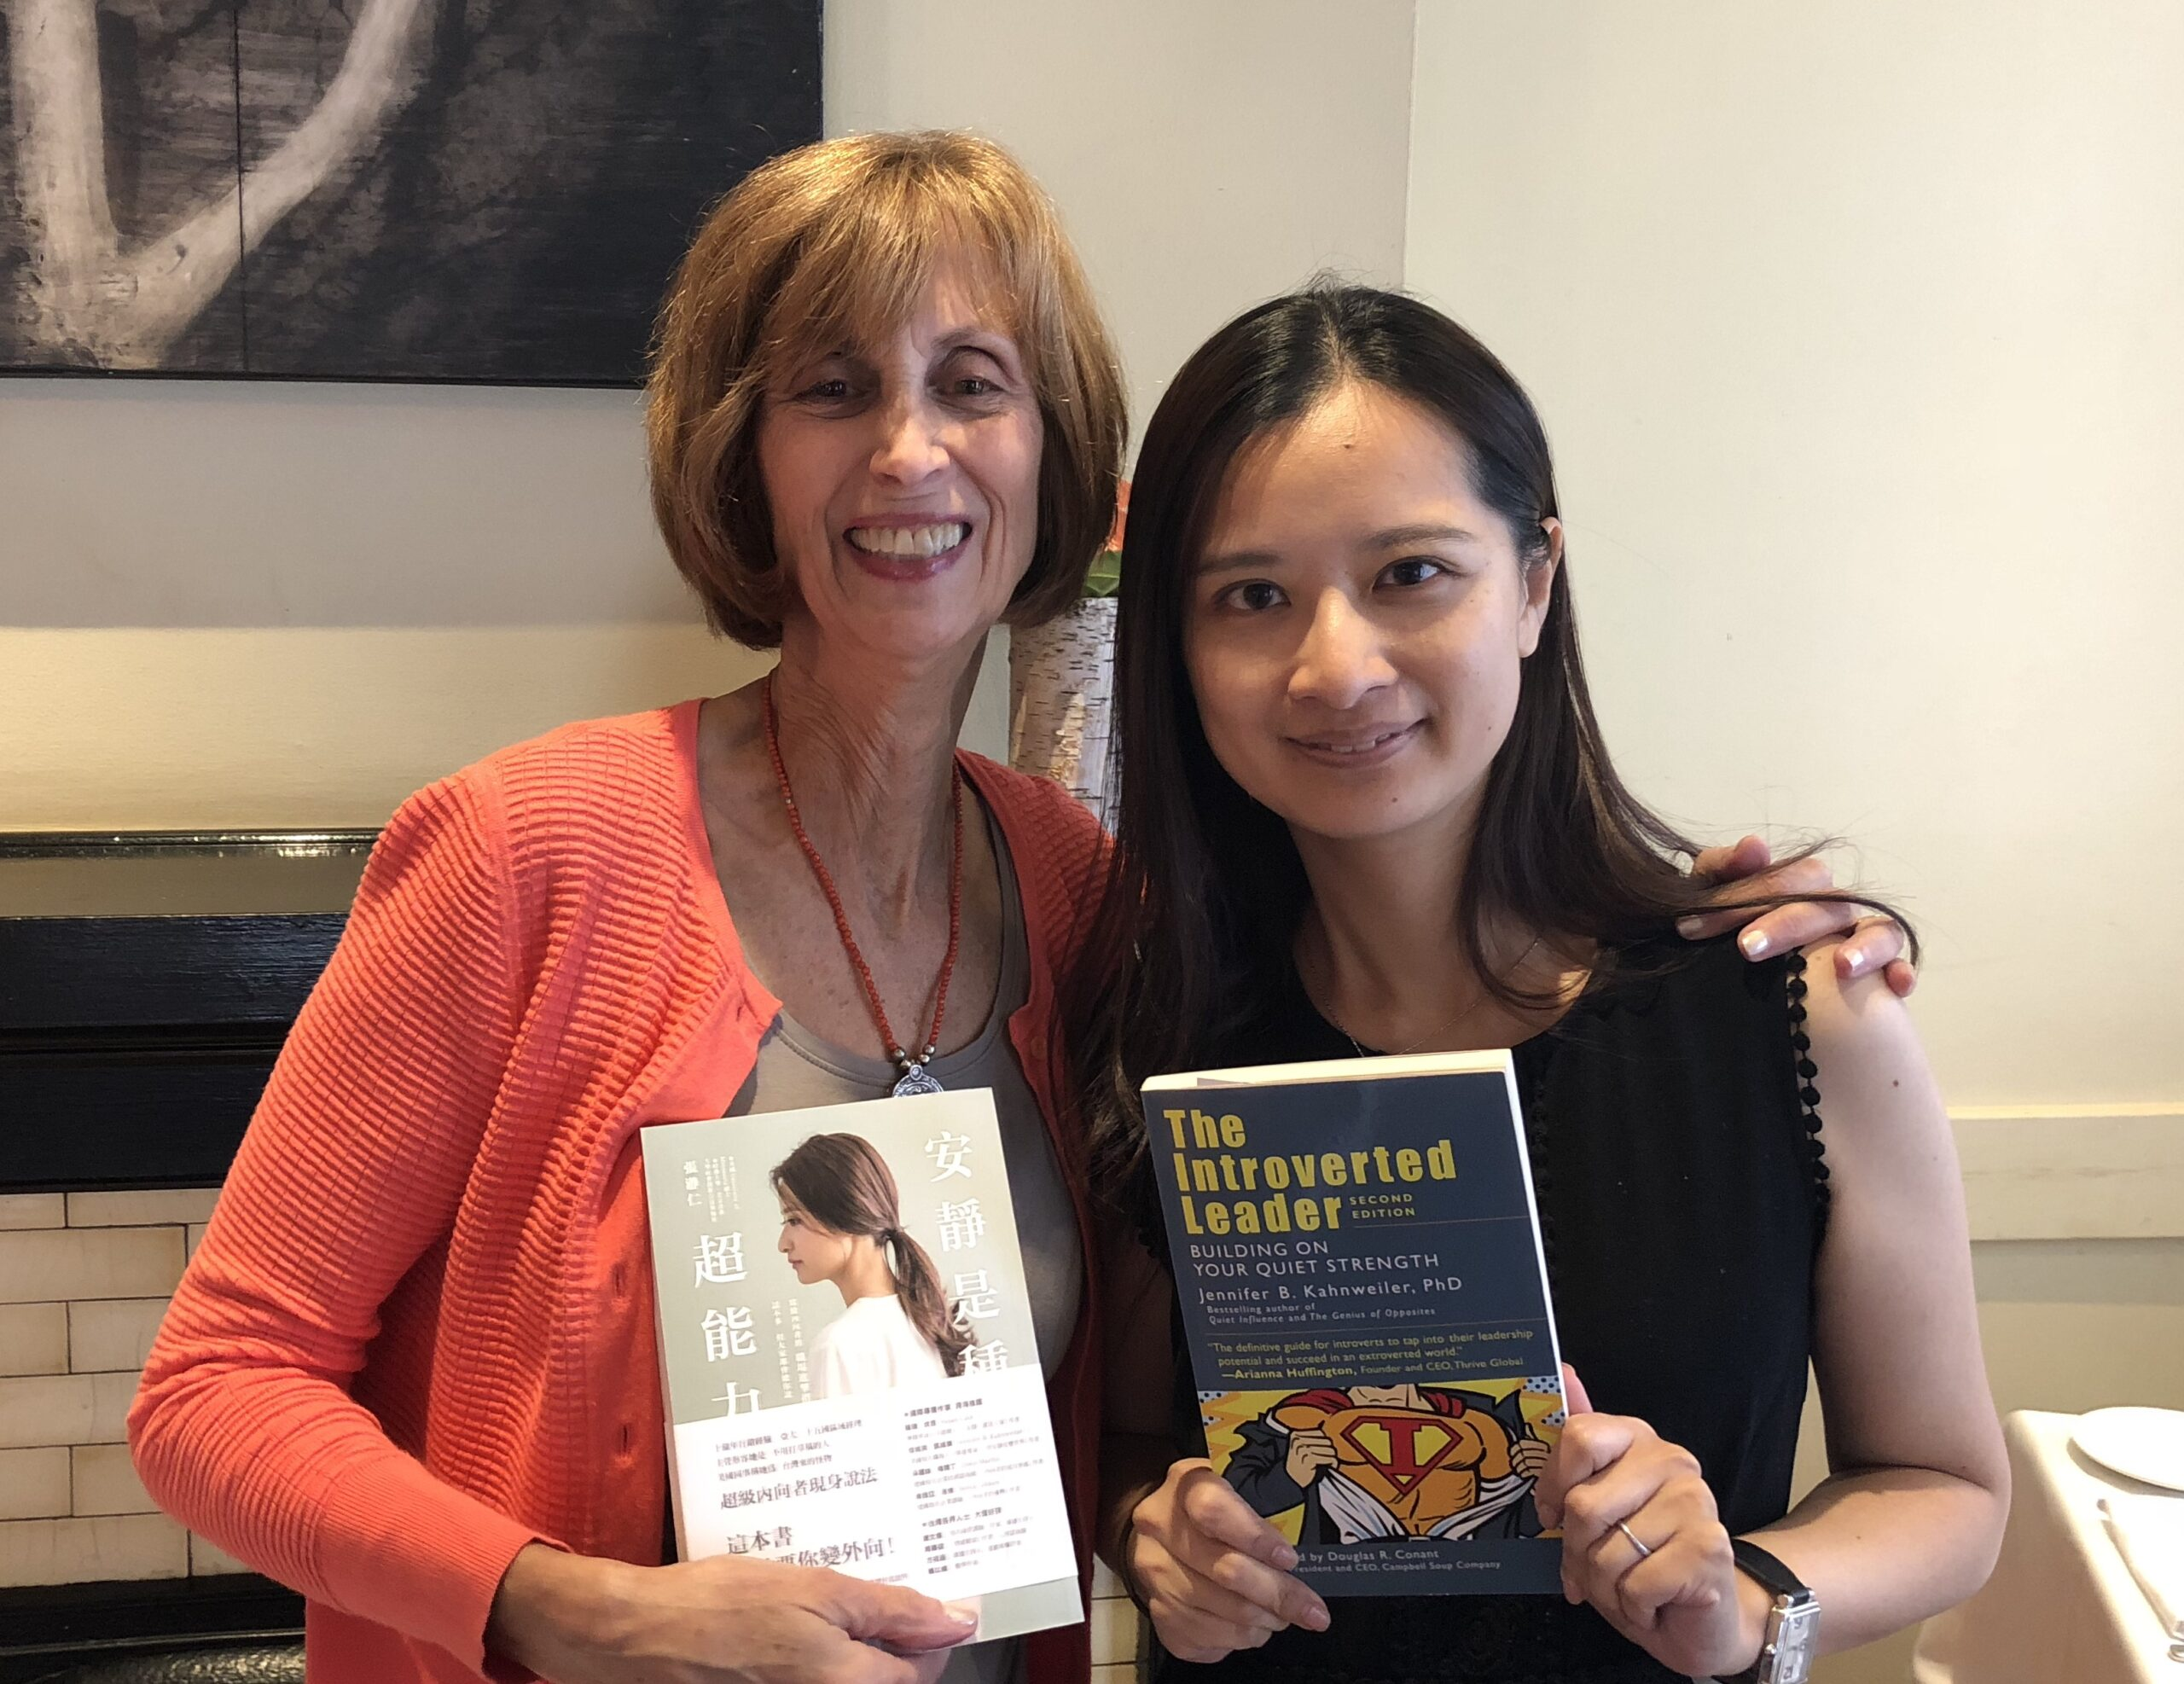 Quiet is the New Superpower: Jennifer Kahnweiler and Jill Chang showing off their books on introverts